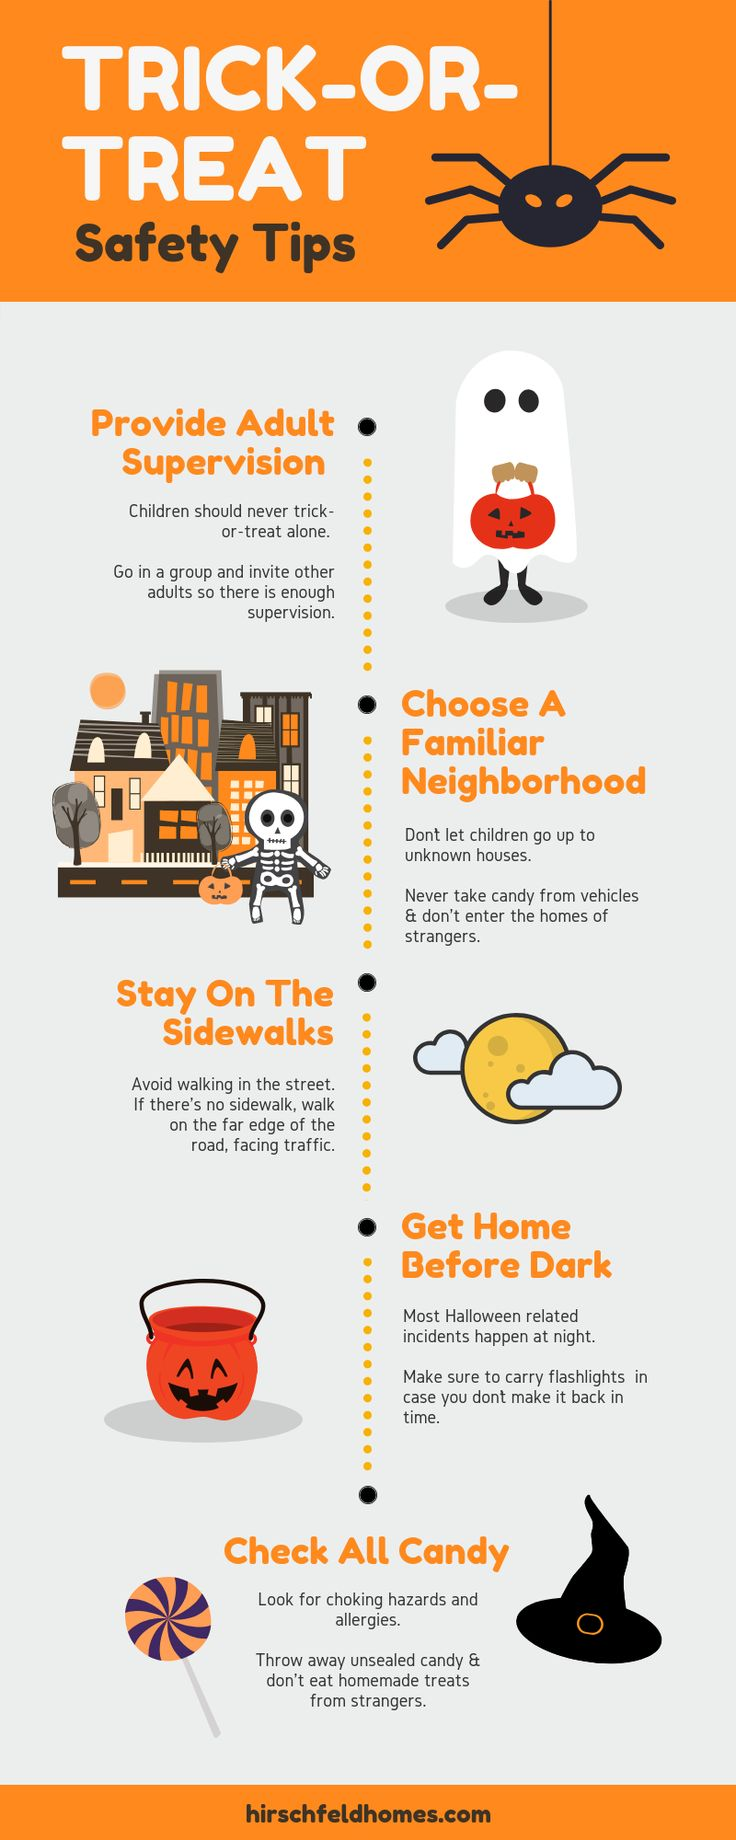 TrickOrTreat Safety Tips Halloween safety, Trick or